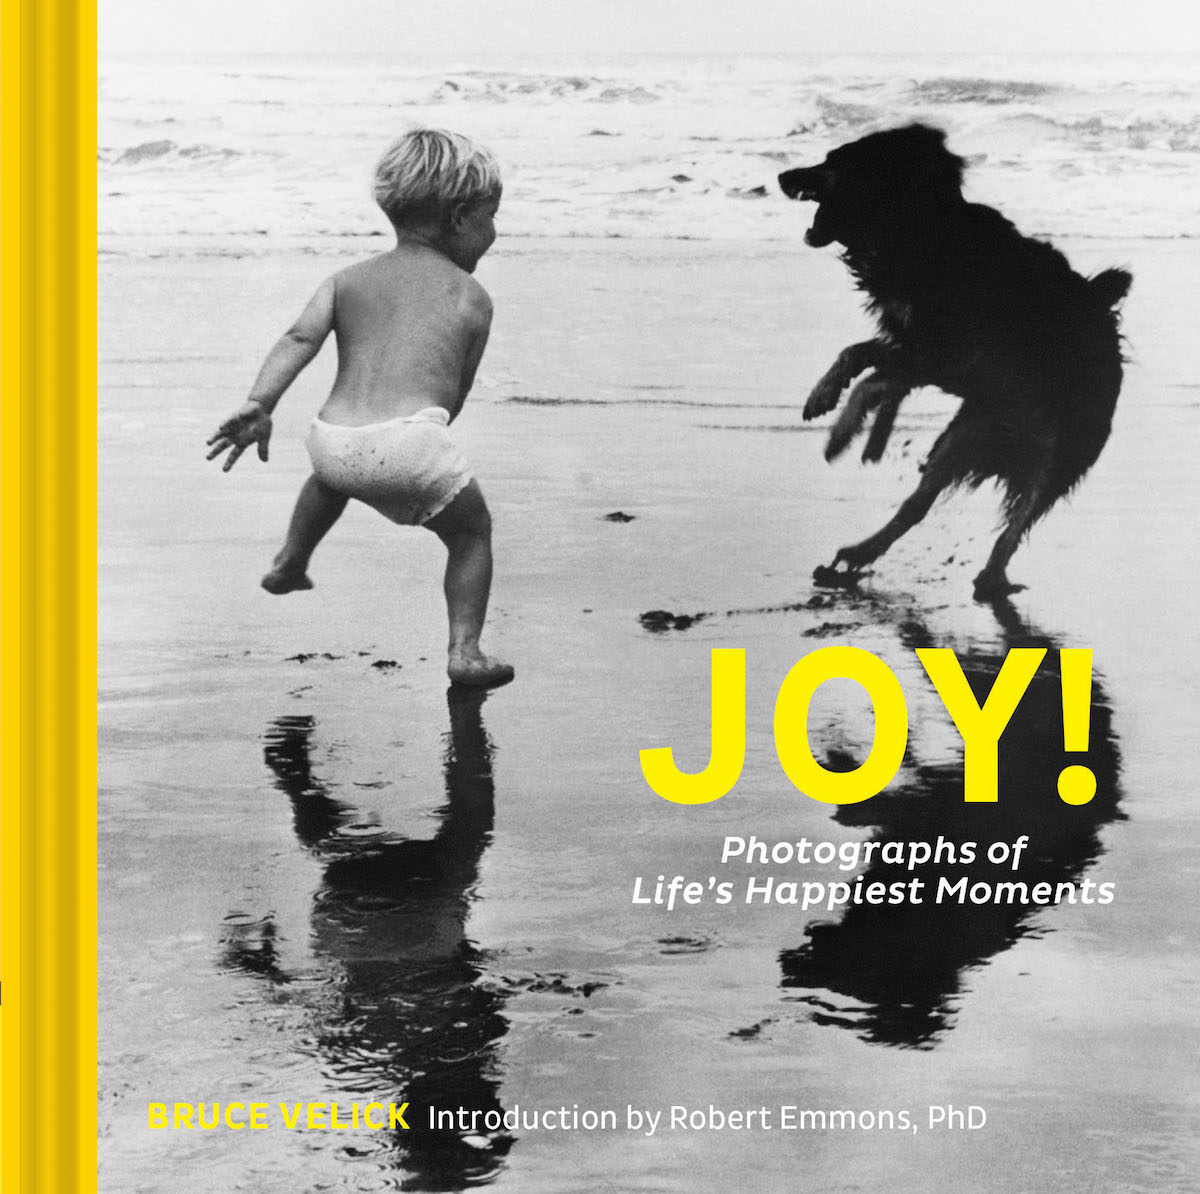 Joy Photographs of Life's Happiest Moments Joy Book Uplifting Photos Robert Emmons Bruce Velick